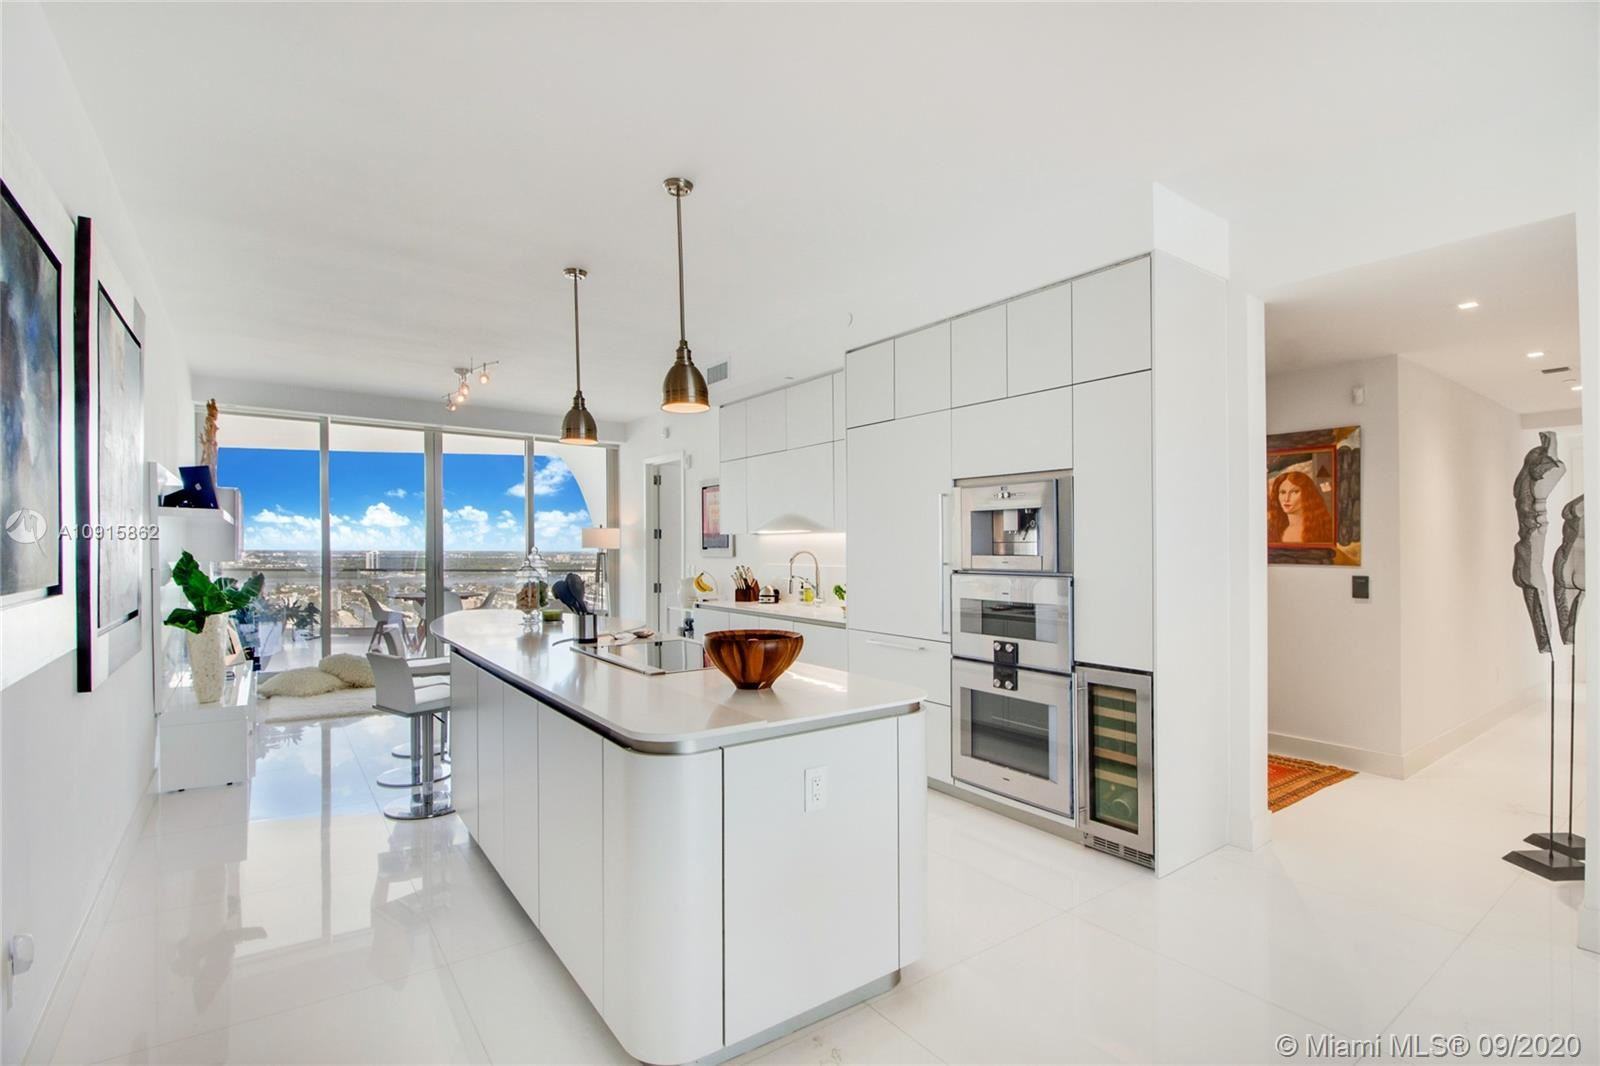 16901 Collins Ave #3103, Sunny Isles, FL 33160 - #: A10915862